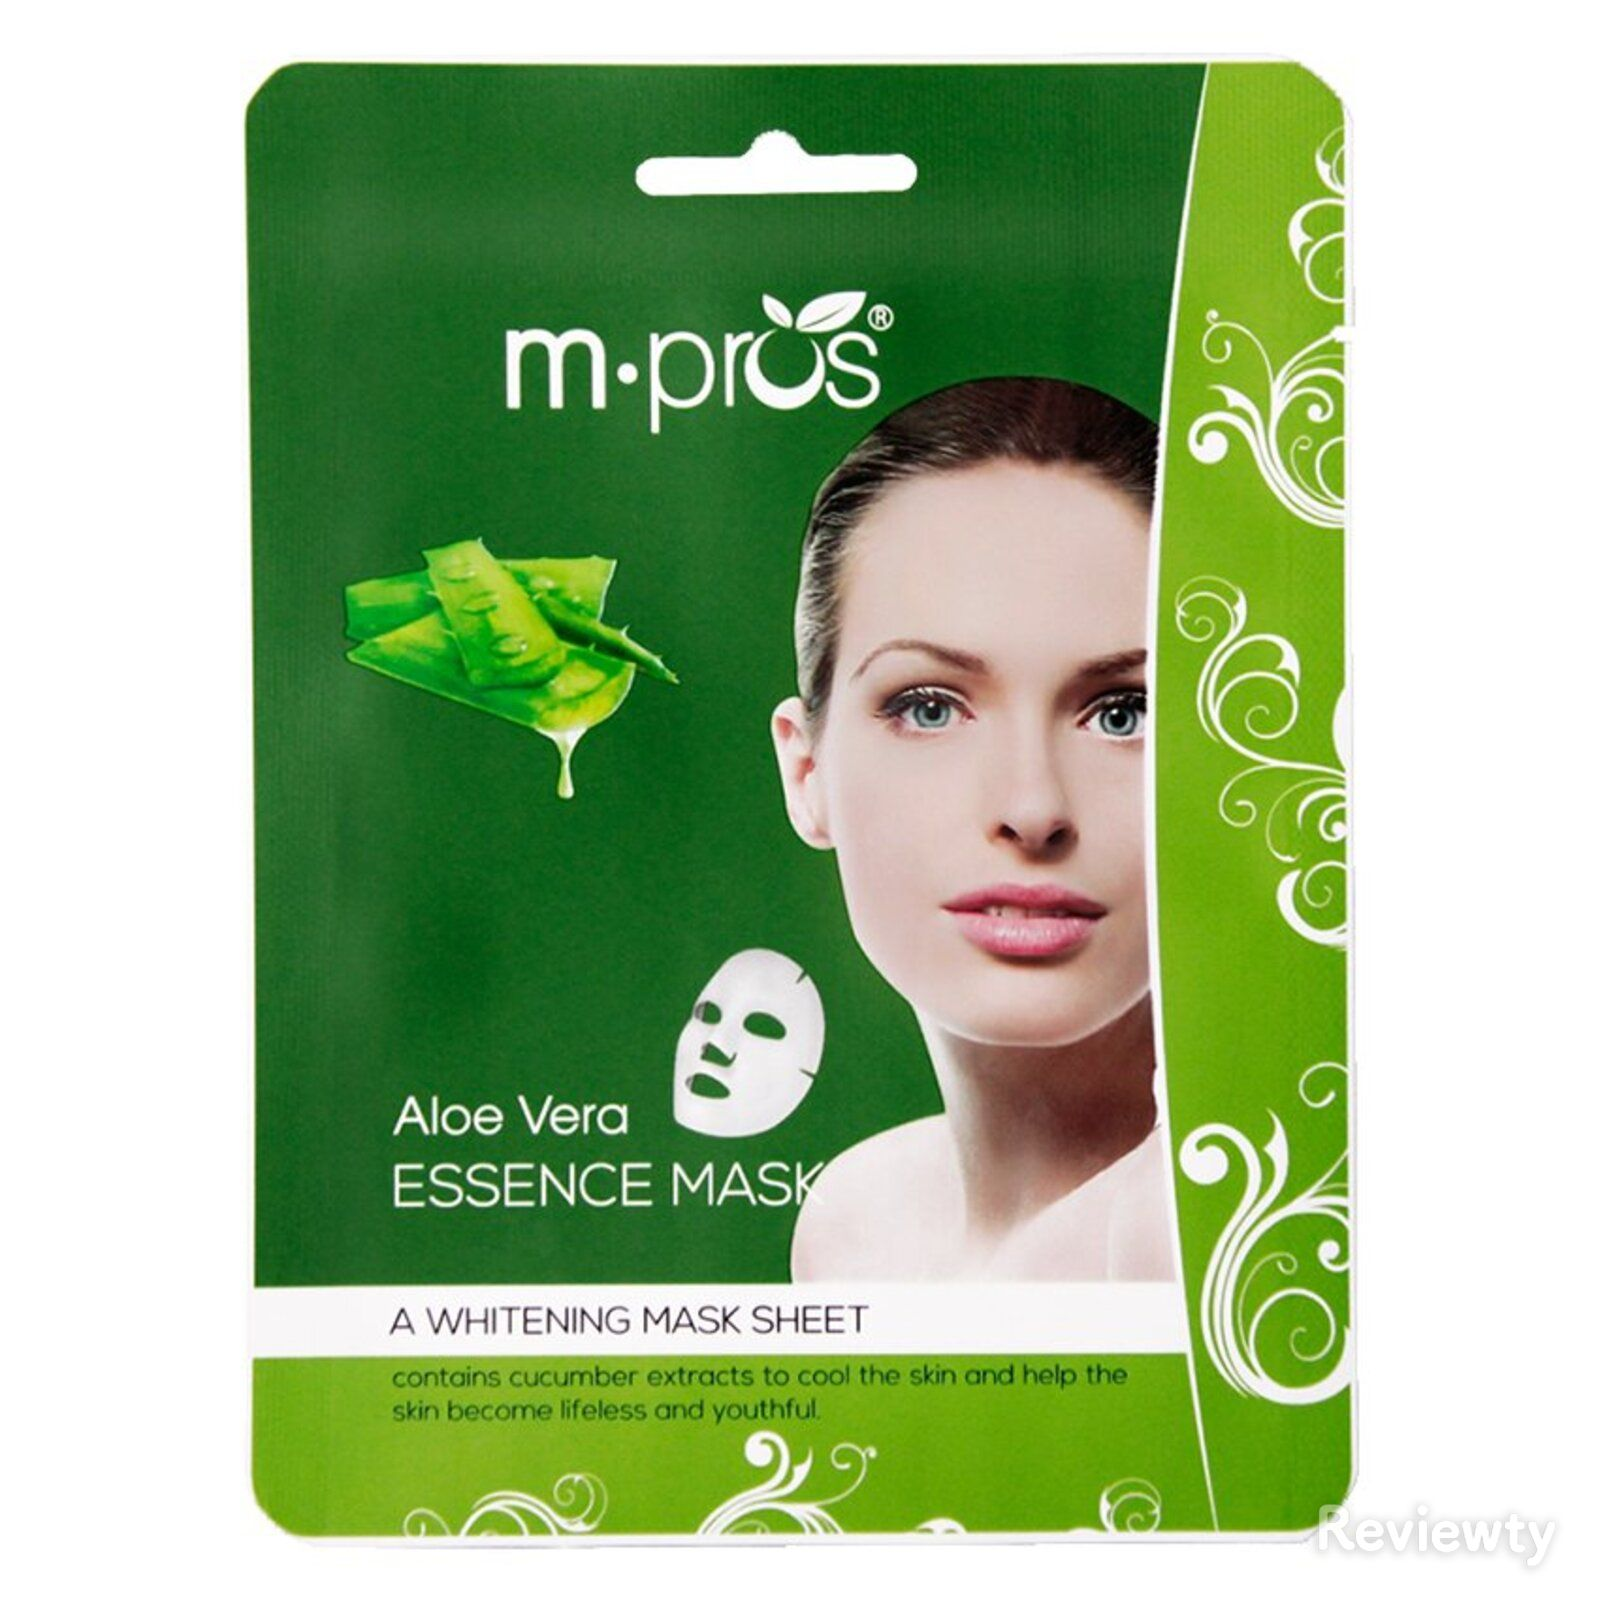 mat-na-m-pros-aloe-vera-essence-mask-review-thanh-phan-gia-cong-dung